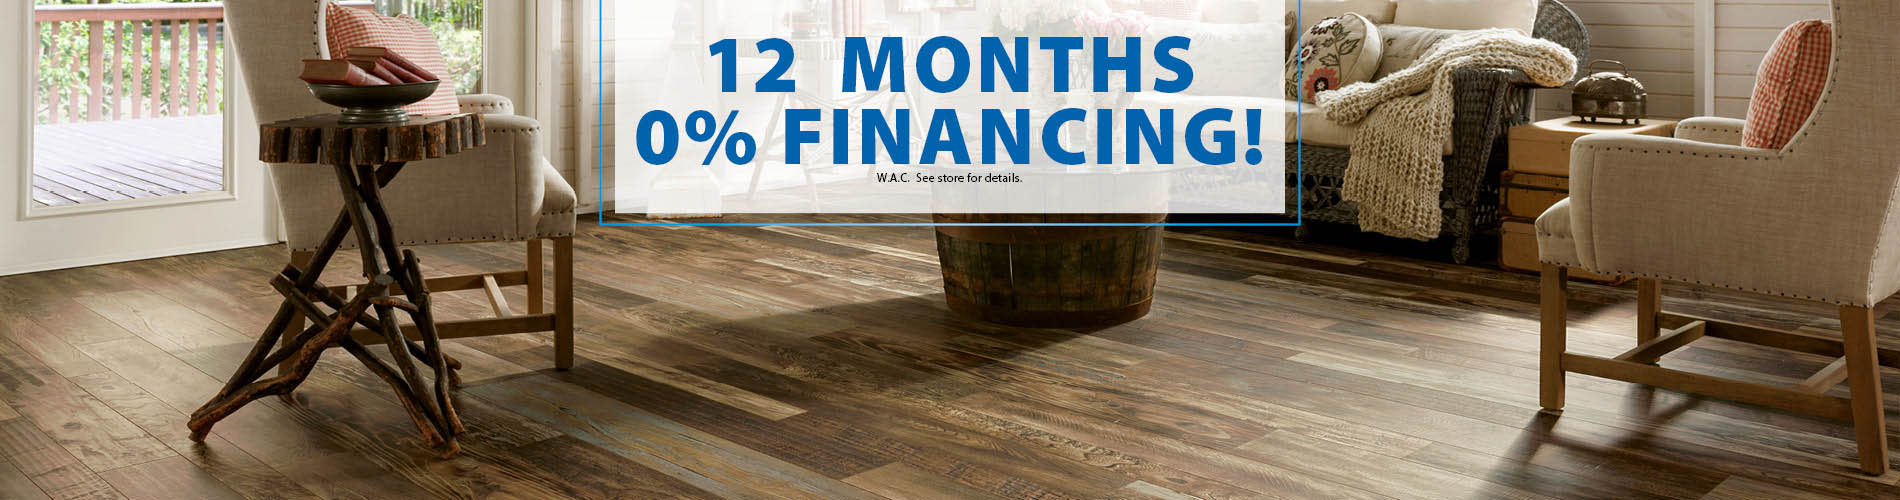 12 Months 0% Interest Financing at Anniston Floors To Go!